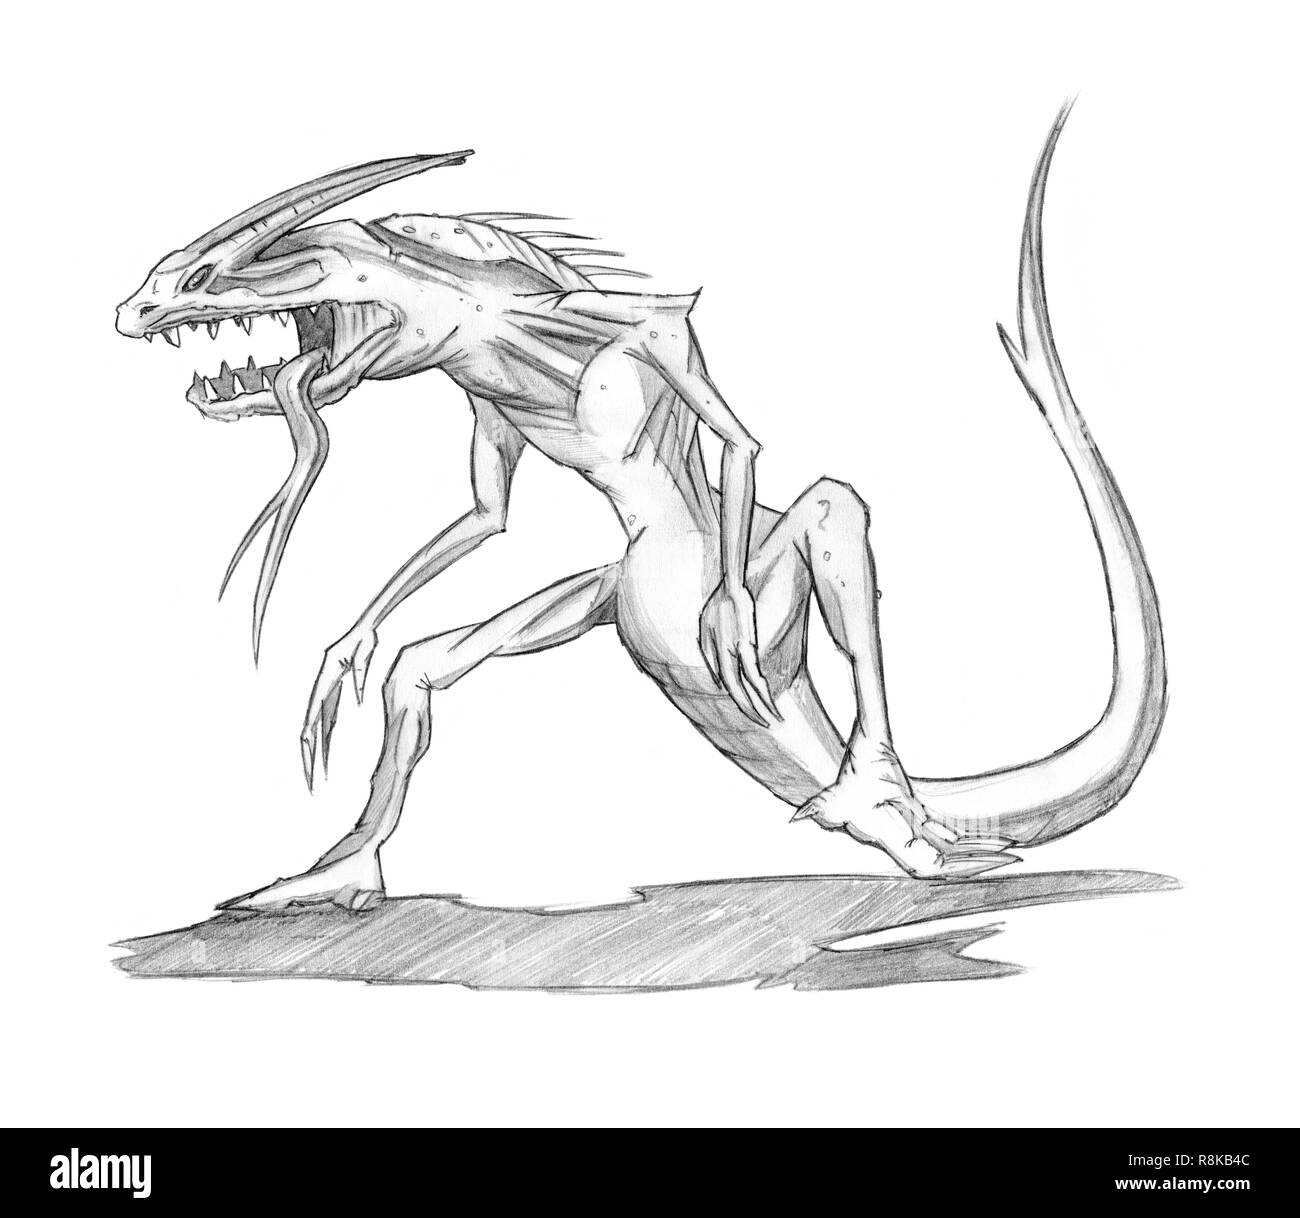 Pencil Concept Art Drawing of Fantasy Lizard Demon or Monster Stock